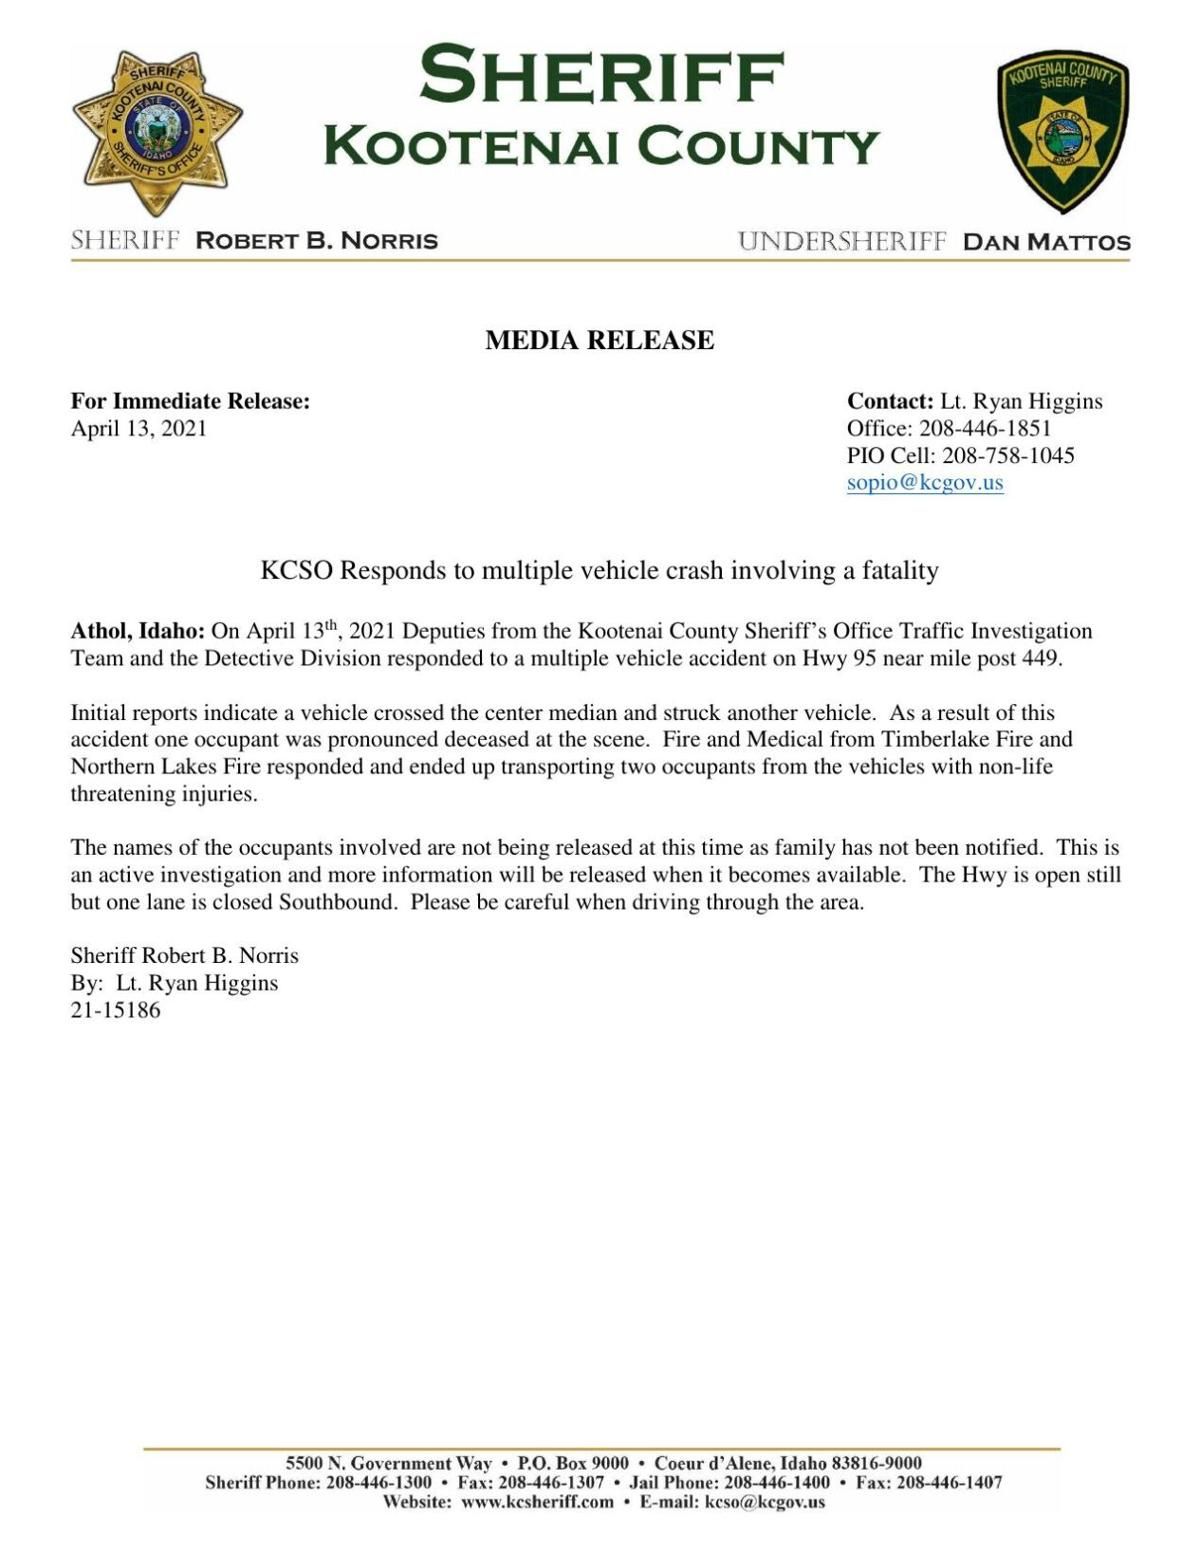 KCSO fatal accident